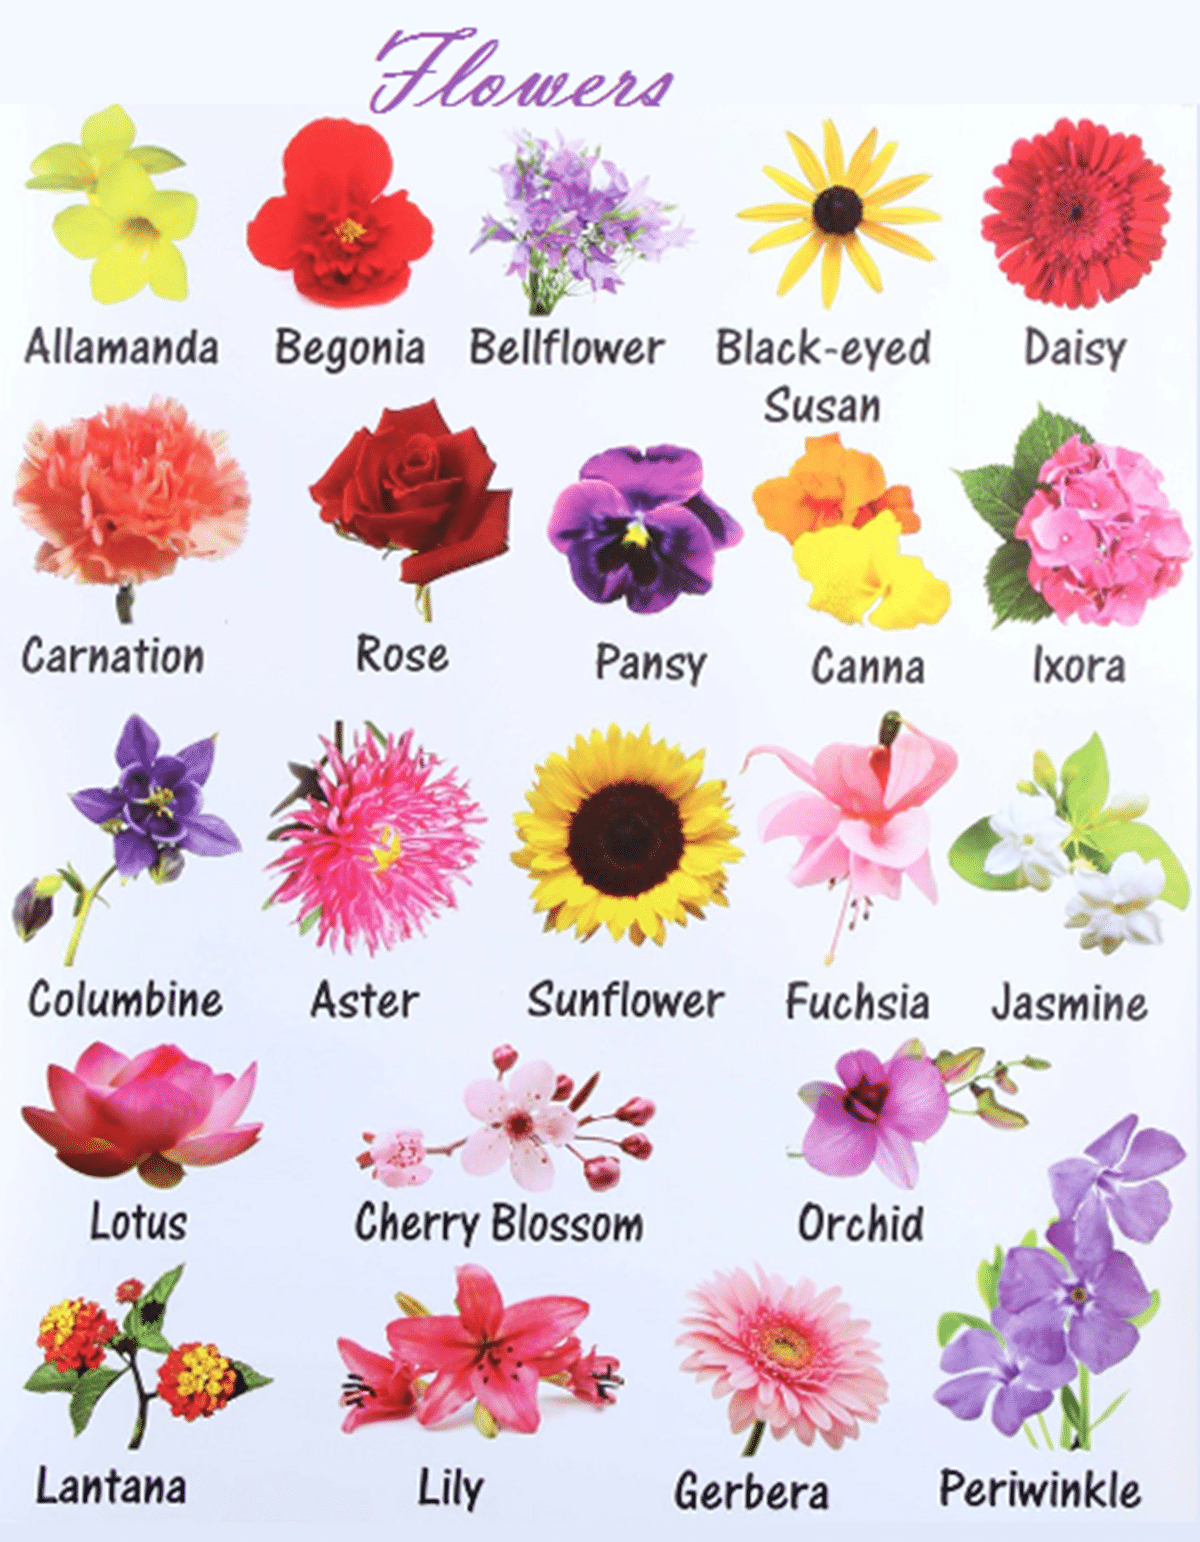 Learn English Vocabulary through Pictures: Flowers